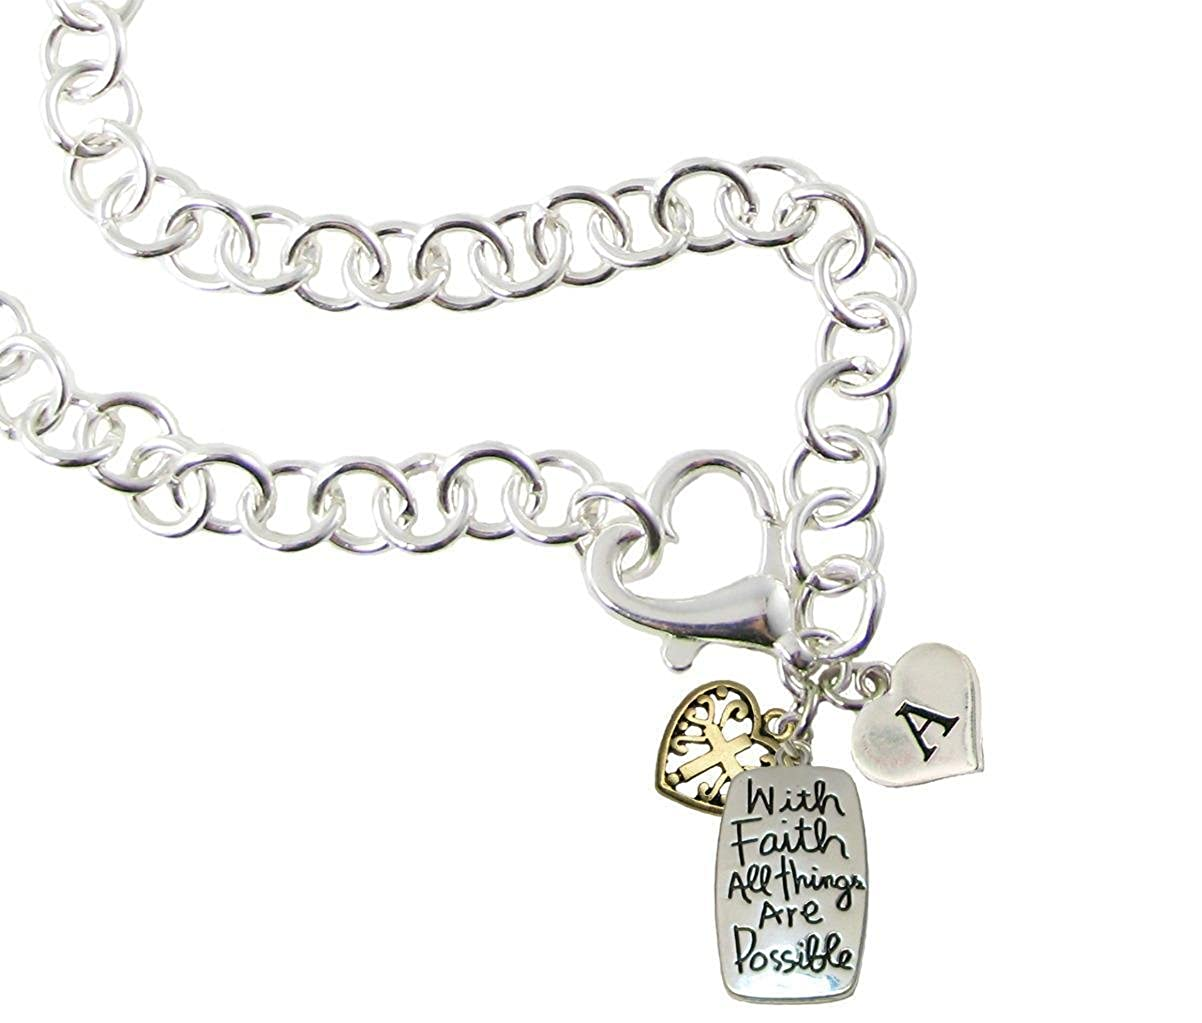 Necklace Custom With Faith All Things are Possible iInitial Charms Heart Clasp Necklace